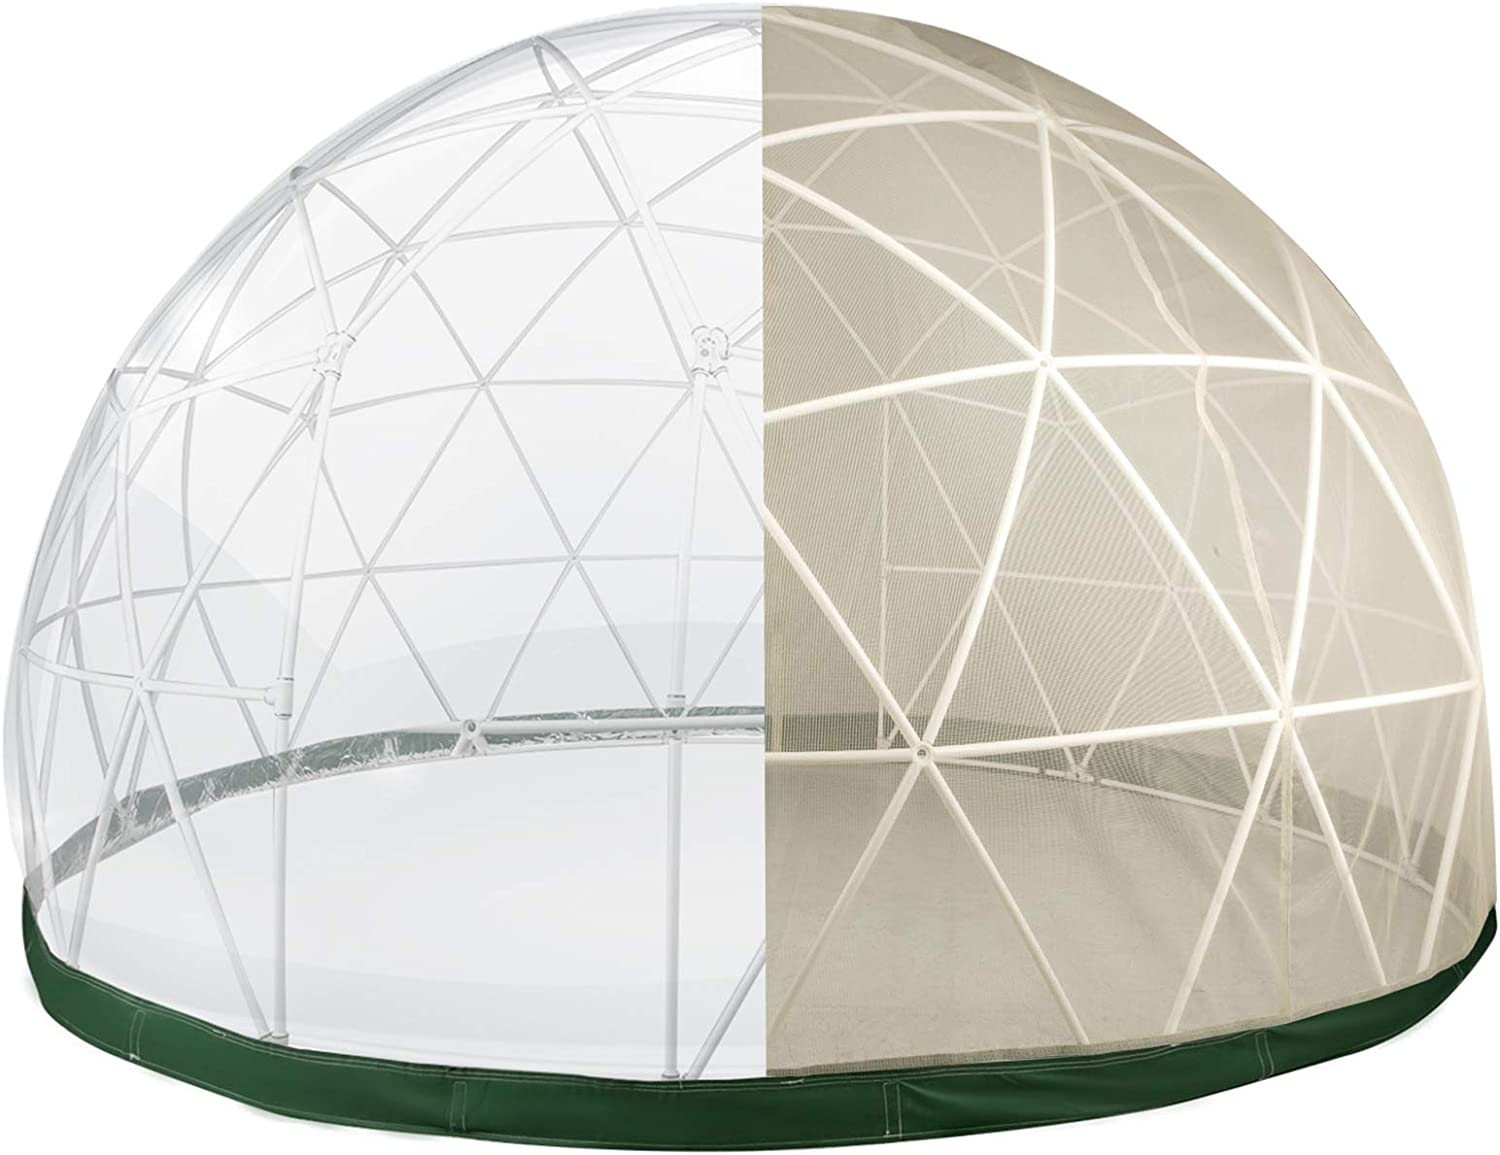 Patiolife Garden Dome with PVC Cover and Mesh Cover - Geodesic Dome 12ft - Lean to Greenhouse with Door and Windows for Sunbubble, Backyard, Outdoor Winter & Summer, Party